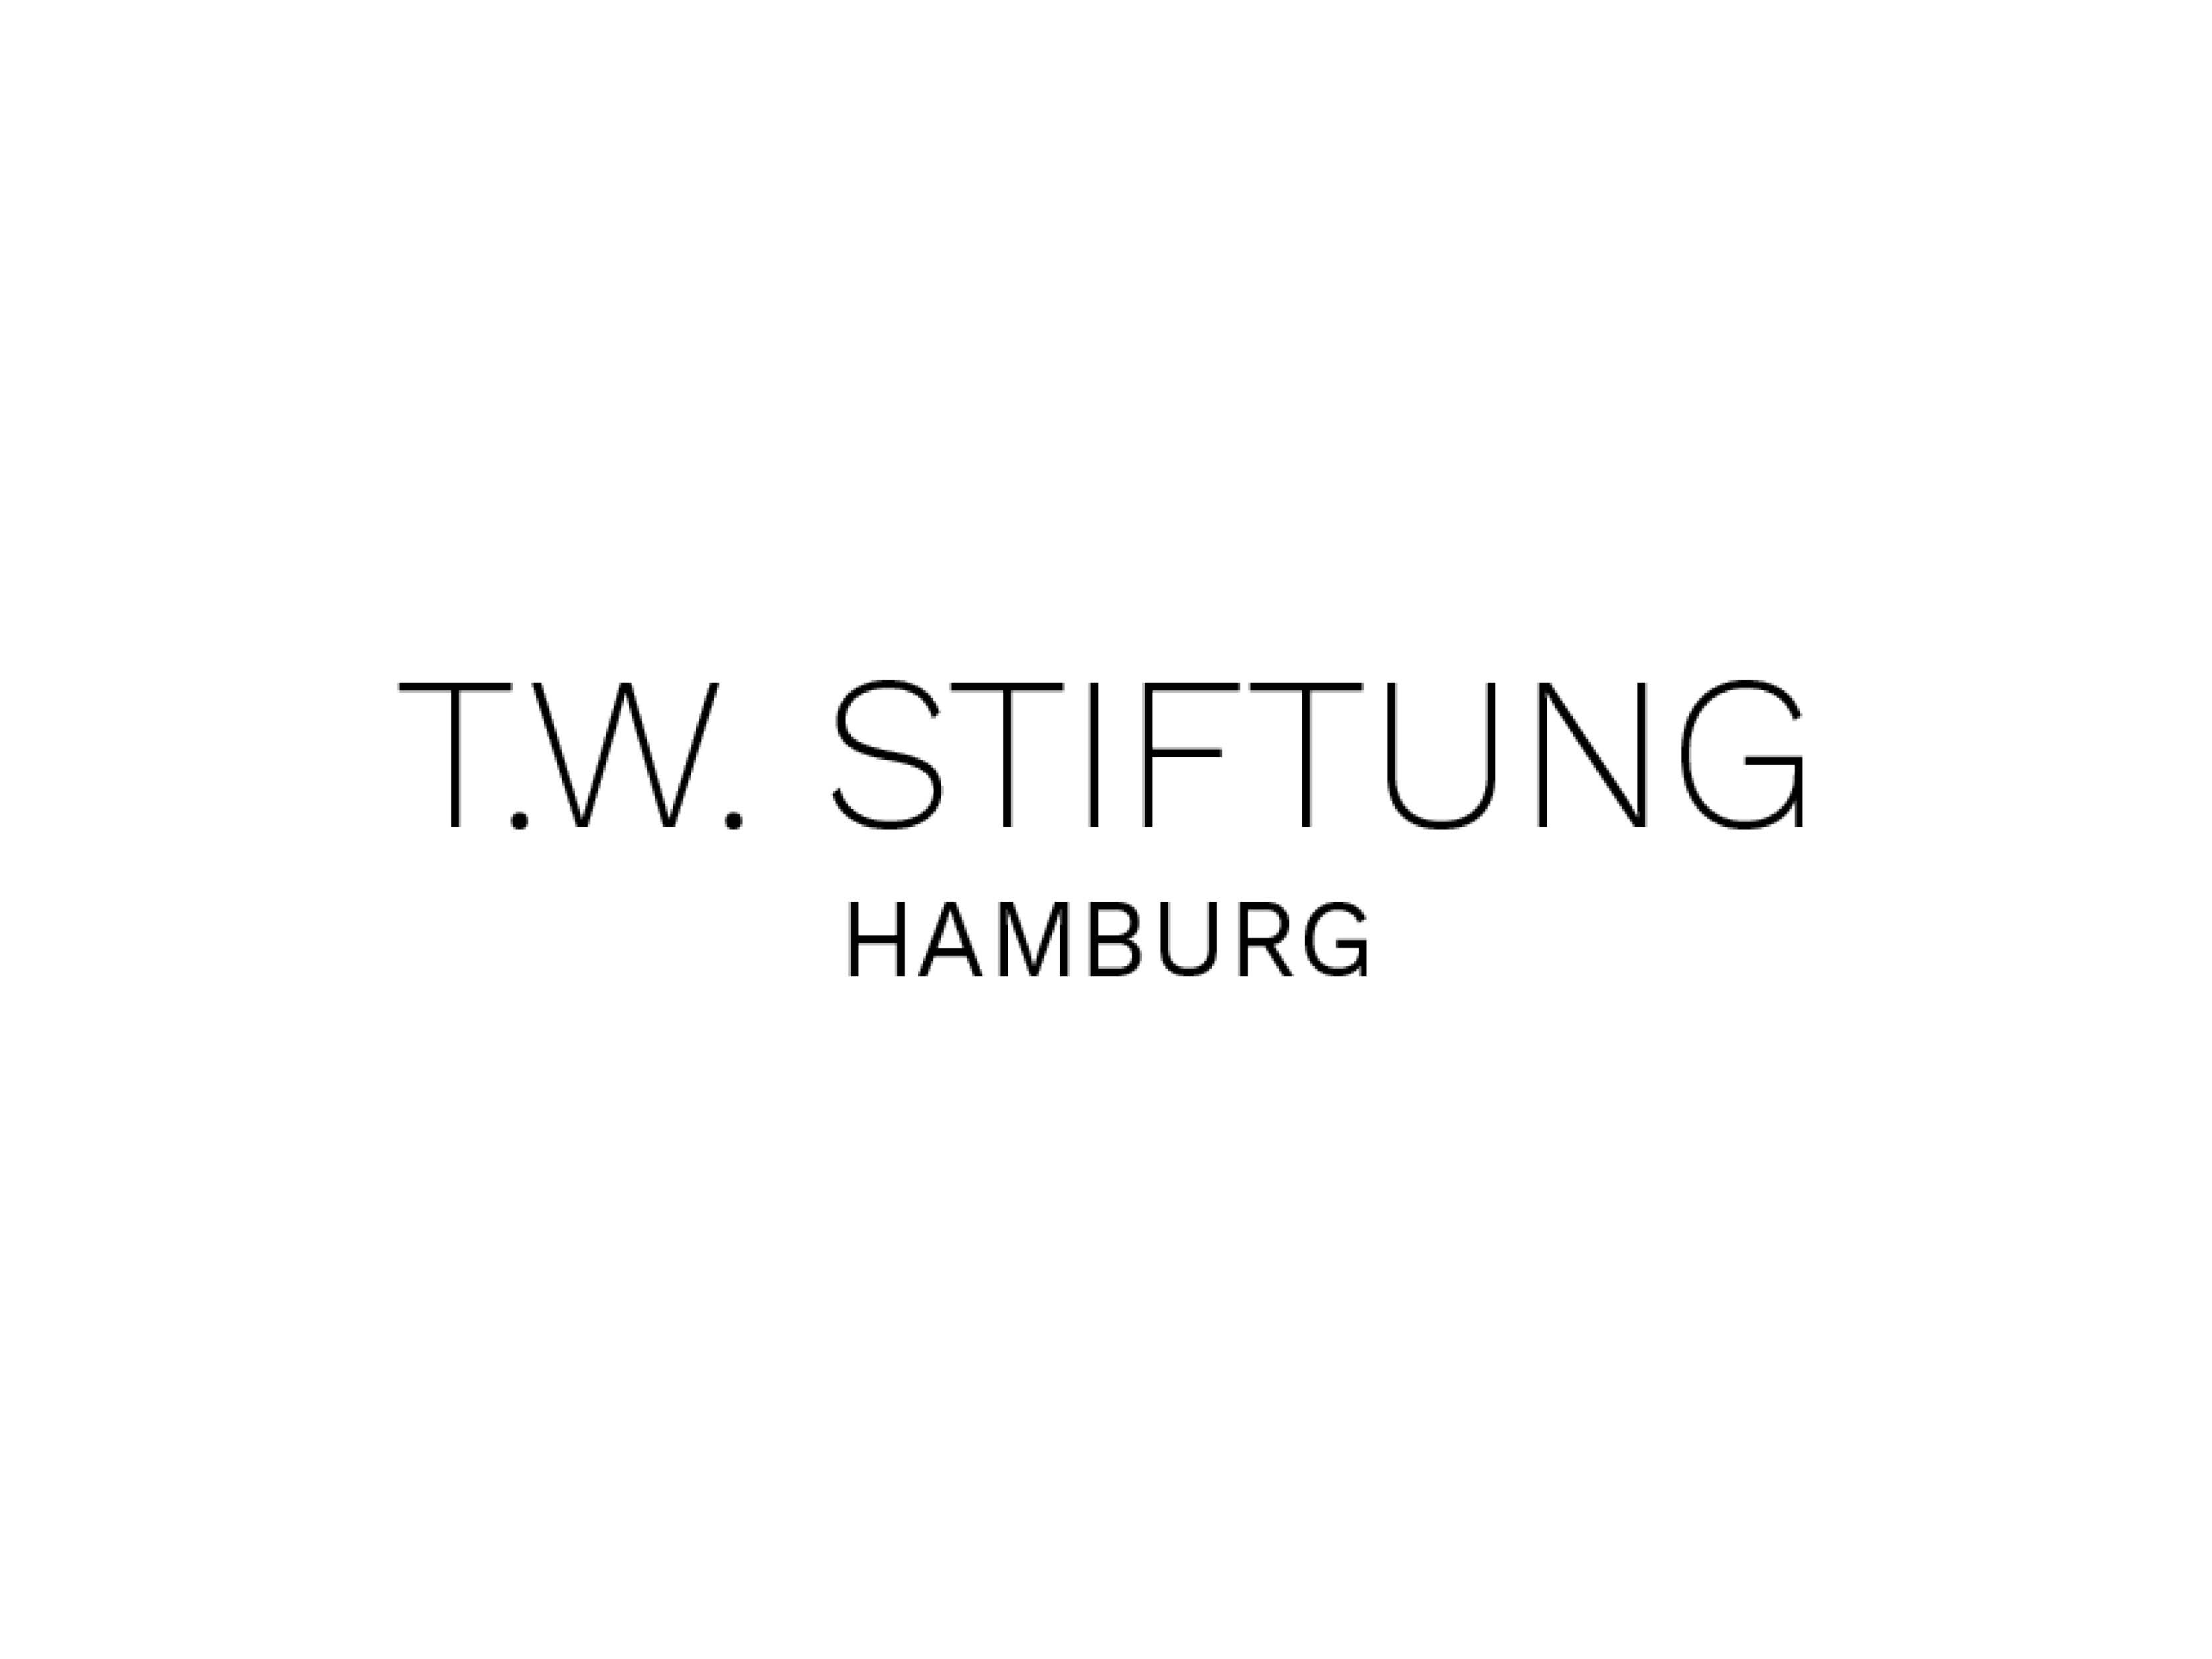 T.W. Stiftung